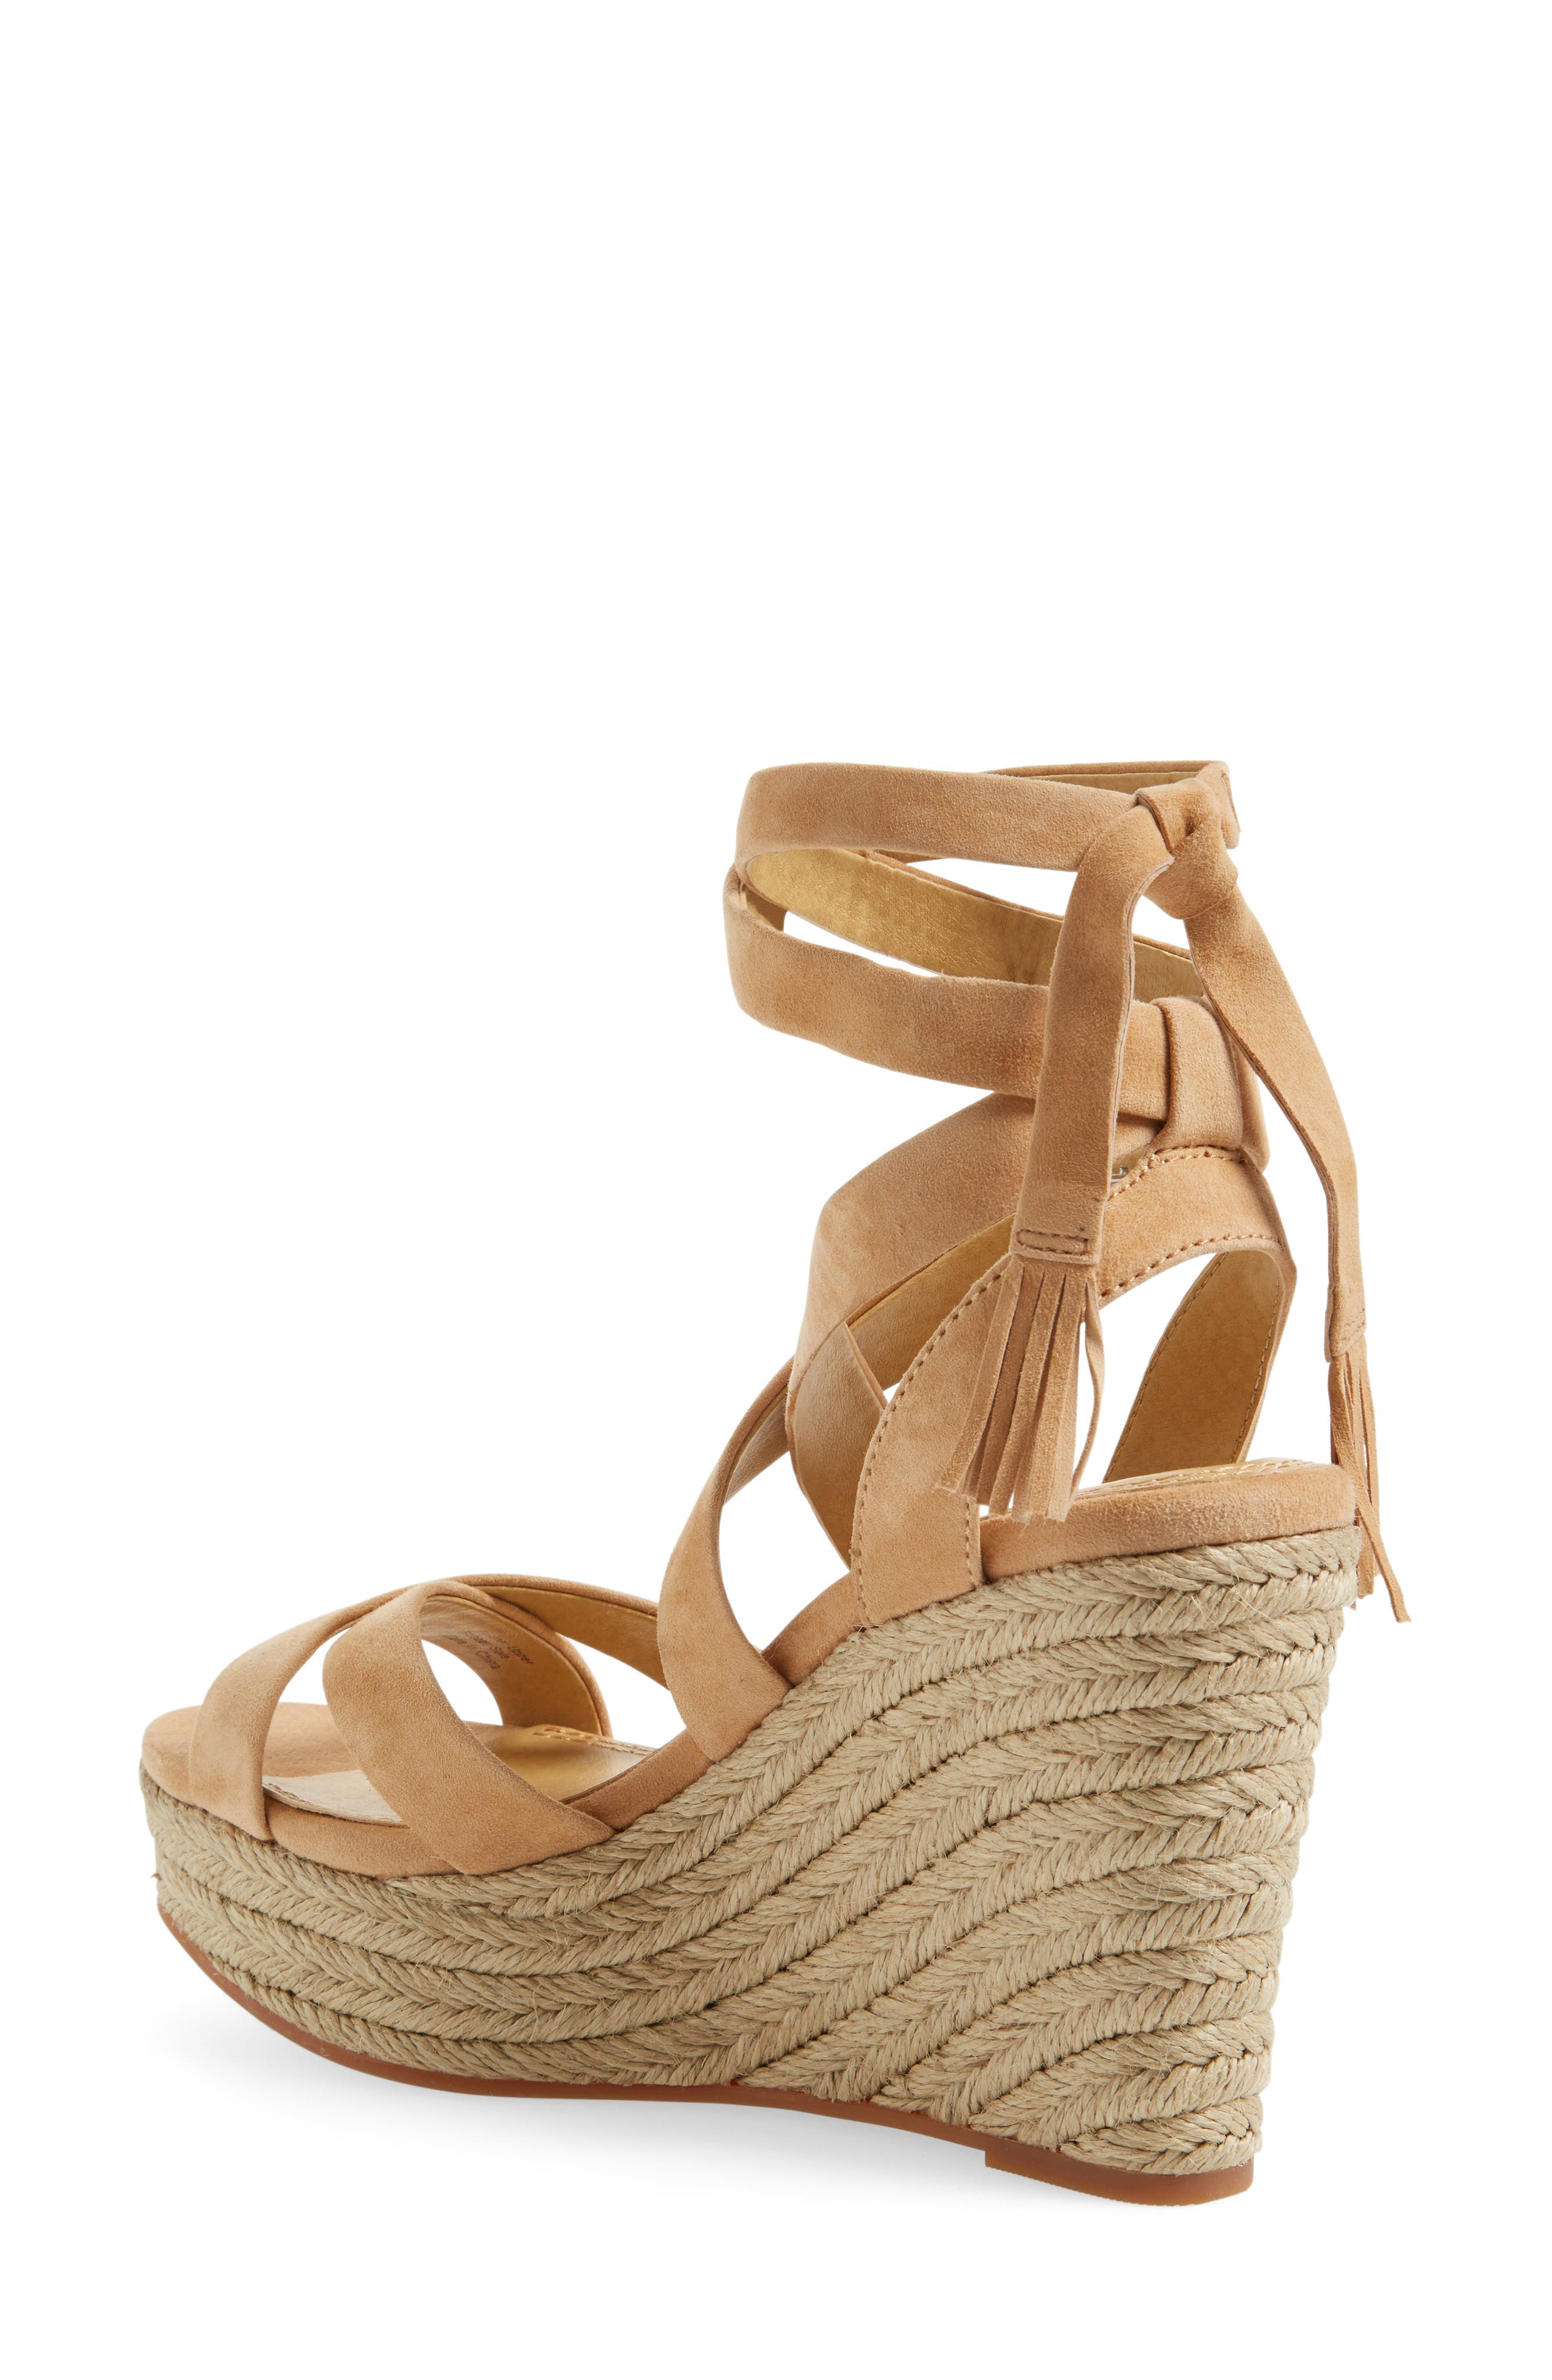 Janice Espadrille Wedge Sandal,                             Alternate thumbnail 2, color,                             Nude Suede